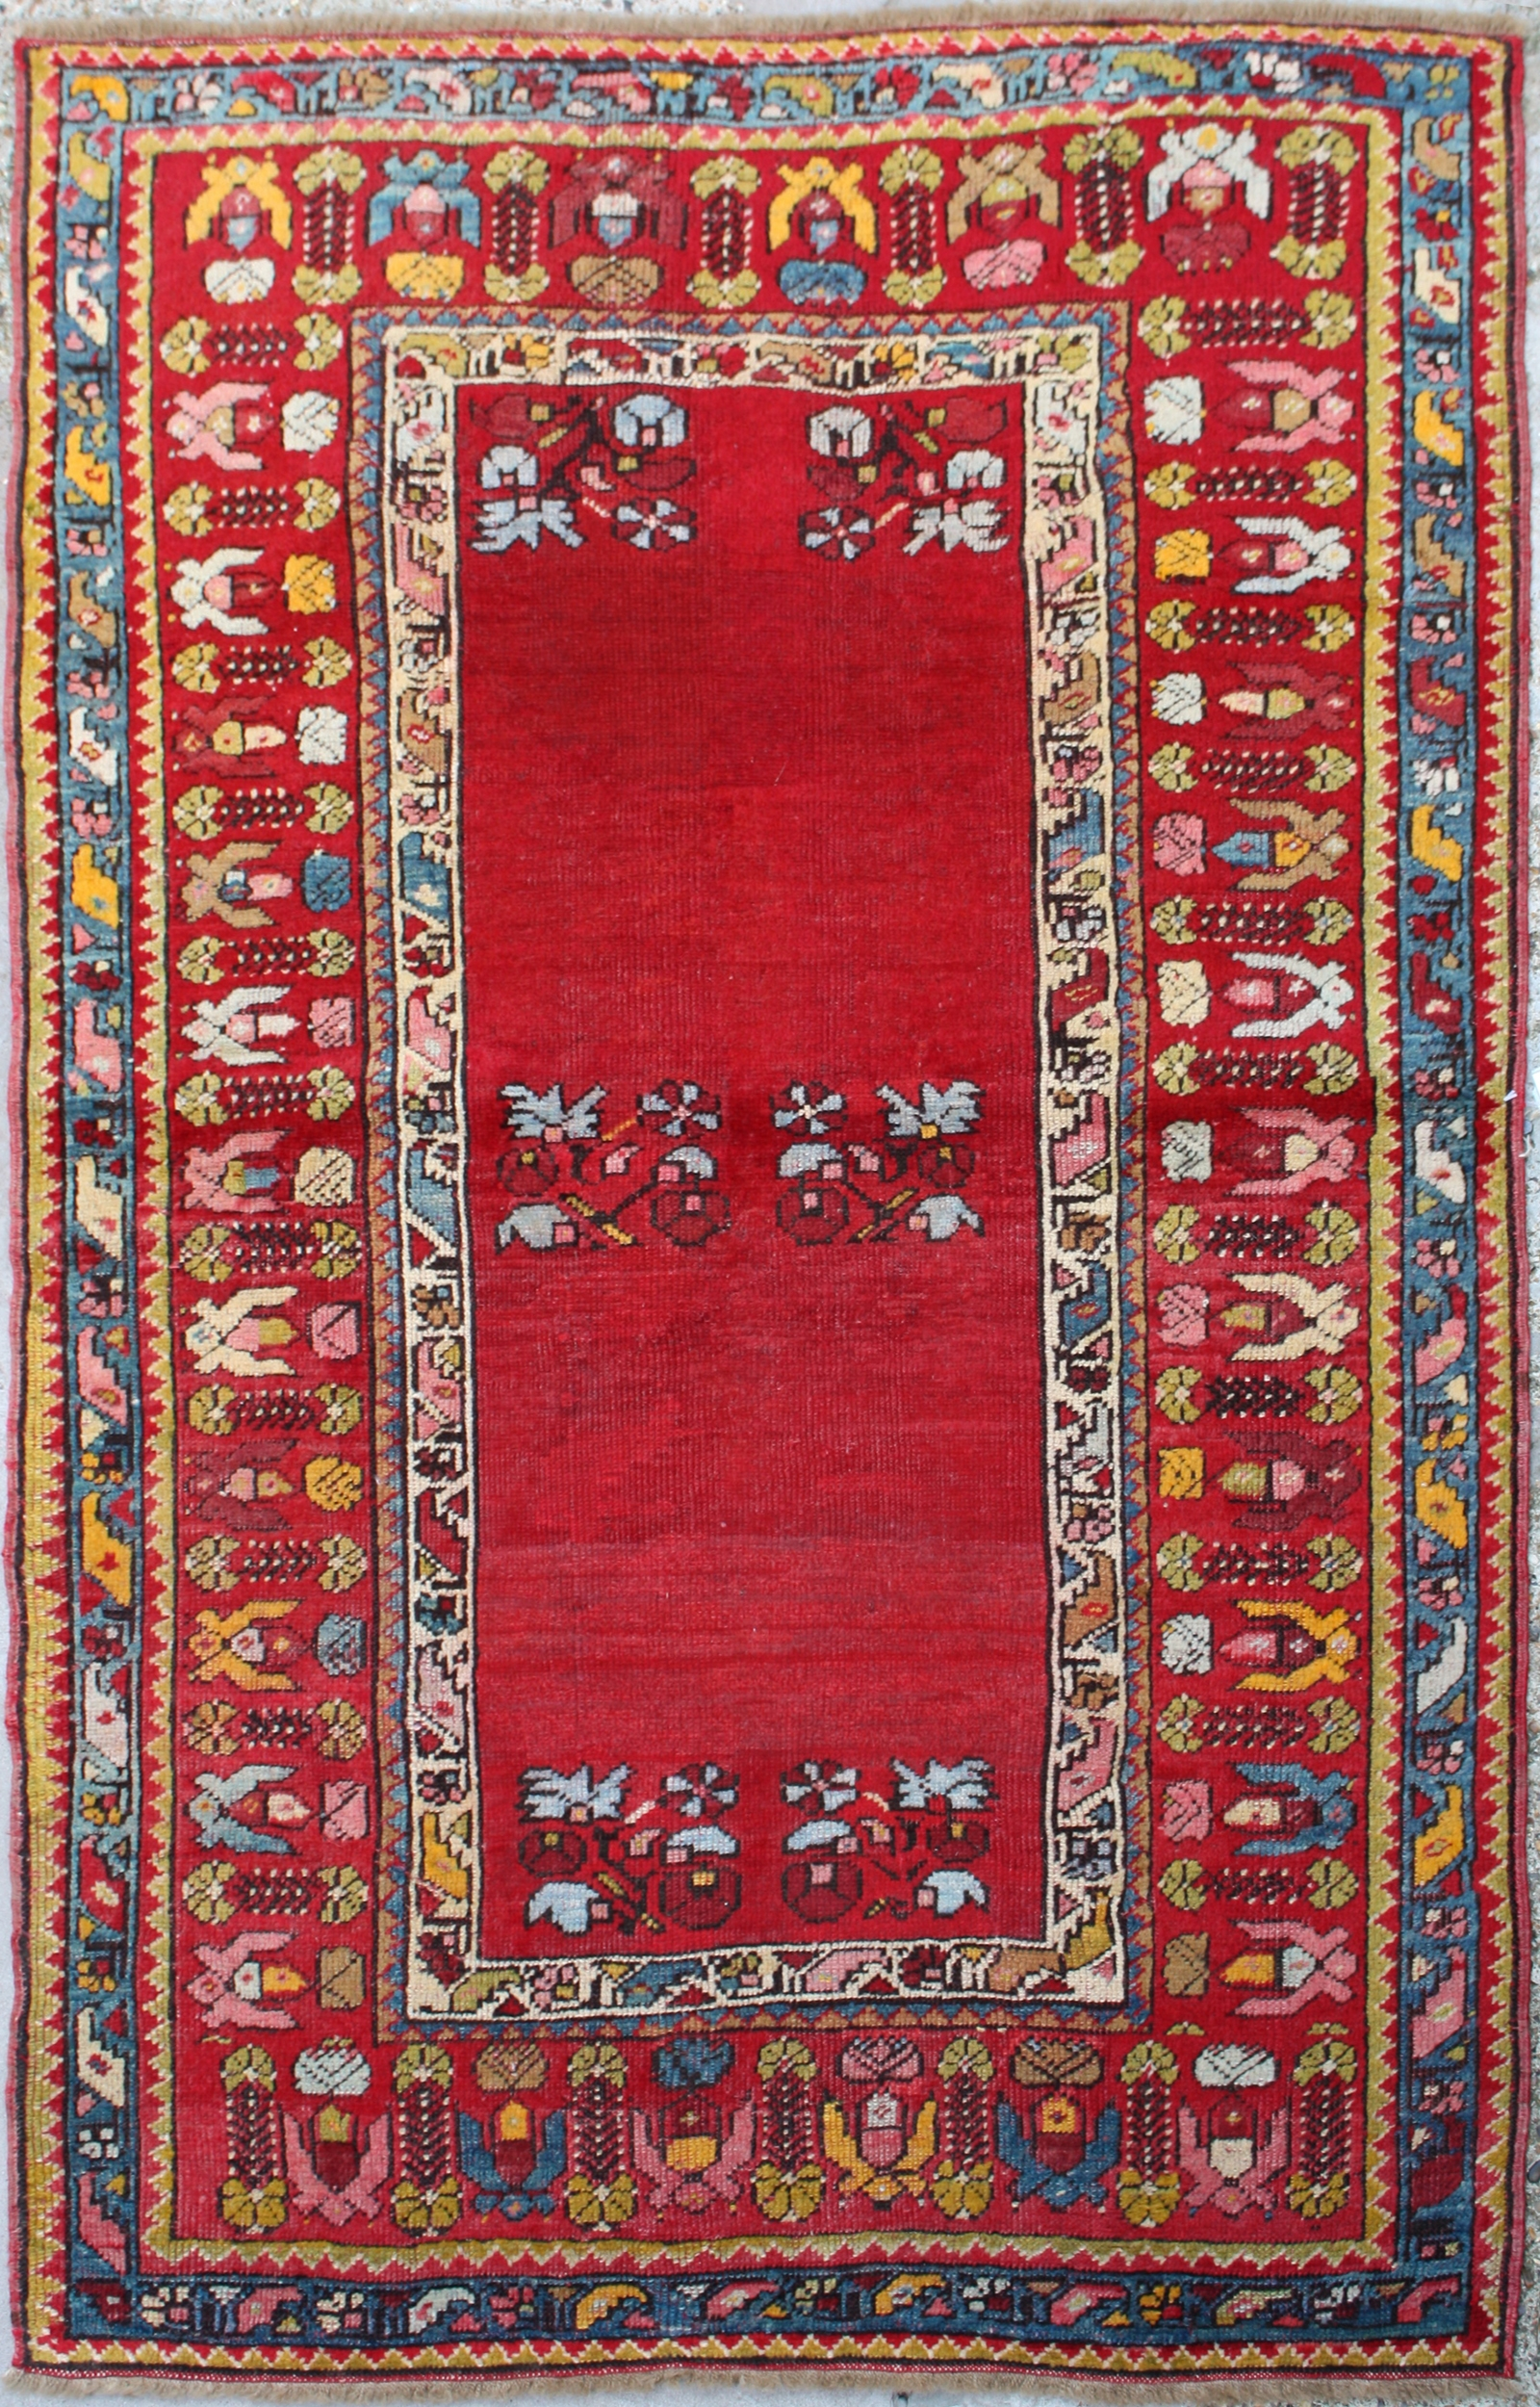 Mujur Rug Turkish Rugs Large Rugs Math Persian Rugs Carpets With Afghan Rug Types (Image 11 of 15)